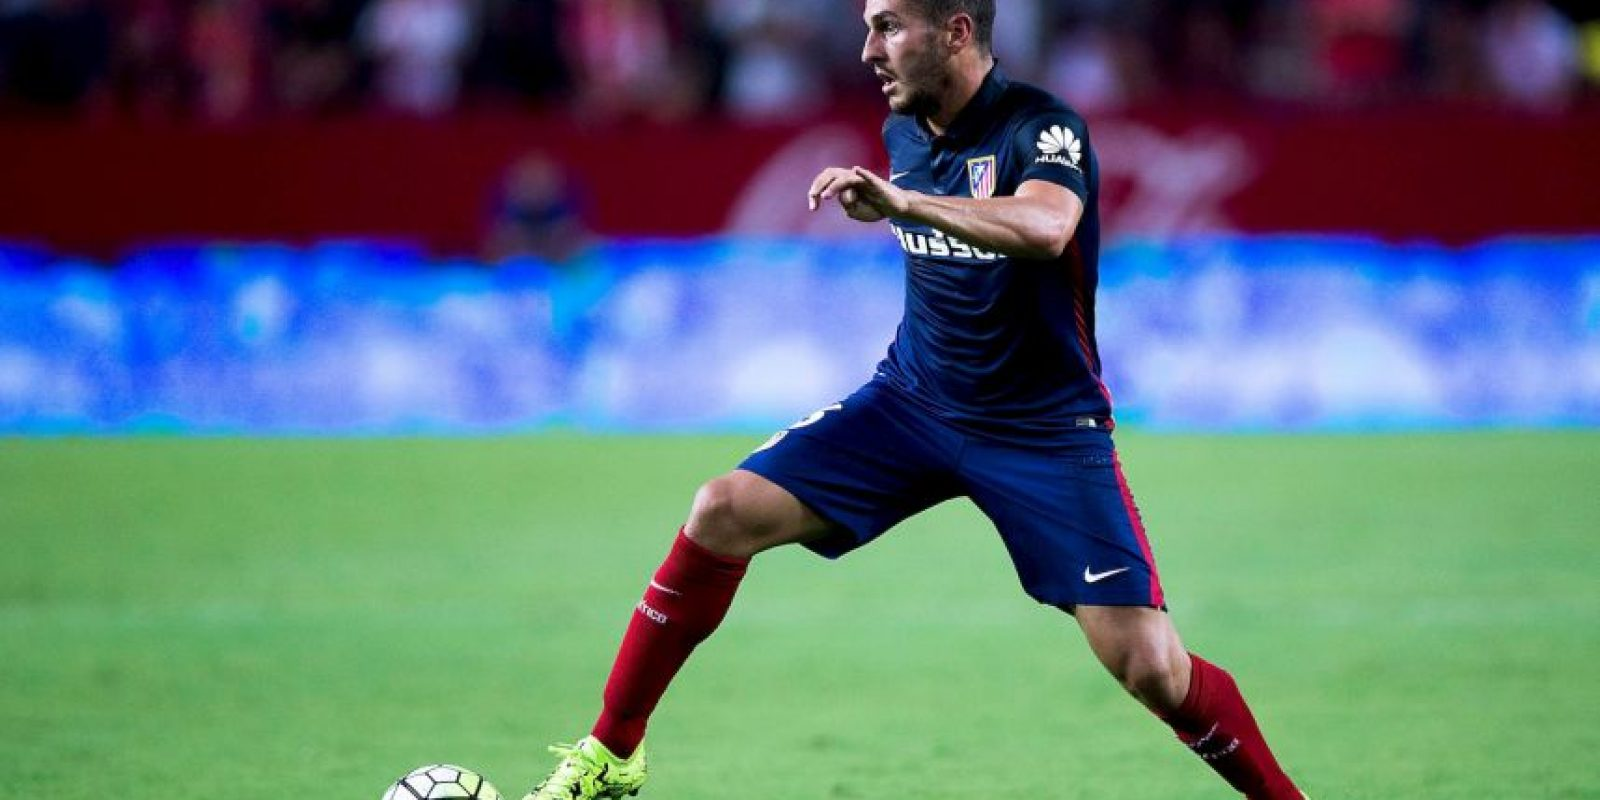 8. Atlético de Madrid Foto: Getty Images